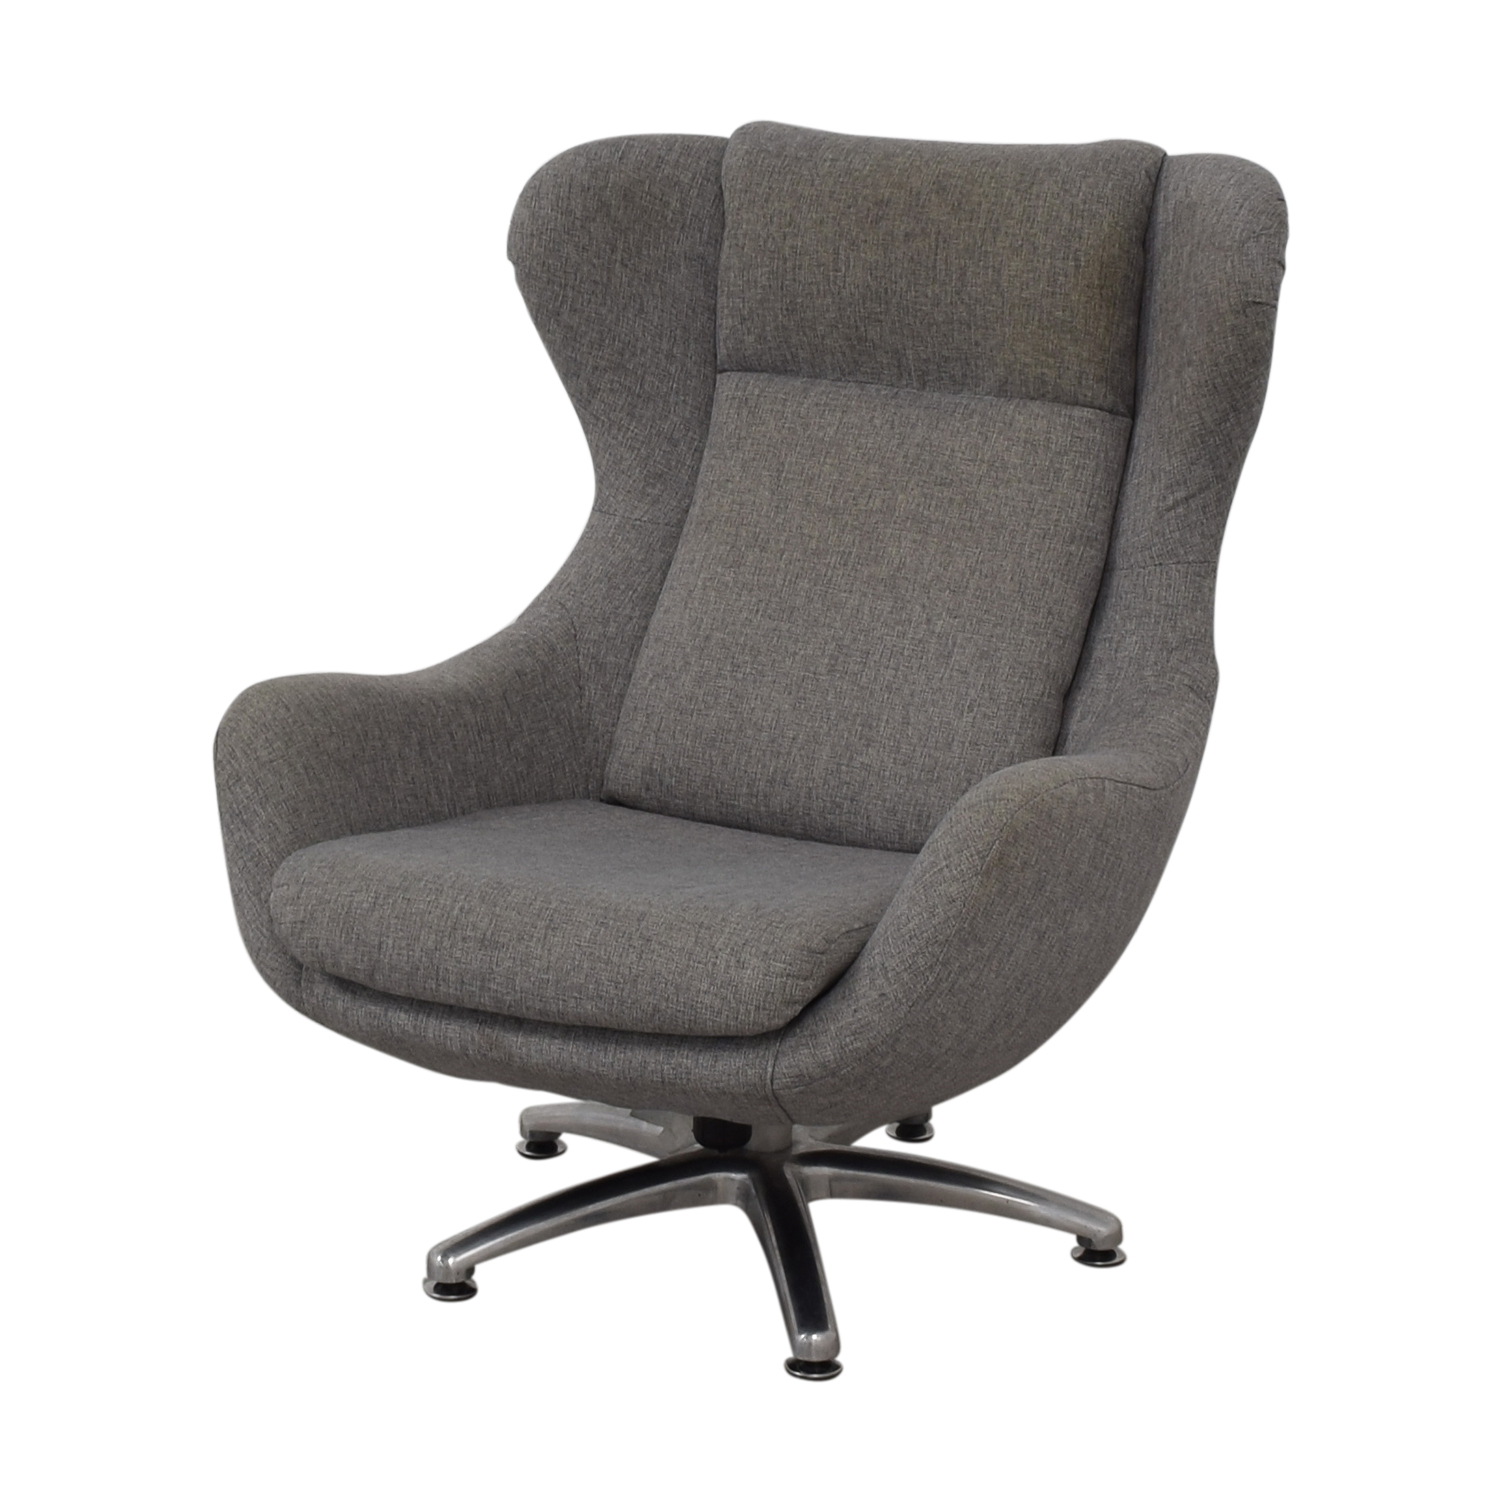 Urban Outfitters Urban Outfitters Wingback Chair coupon